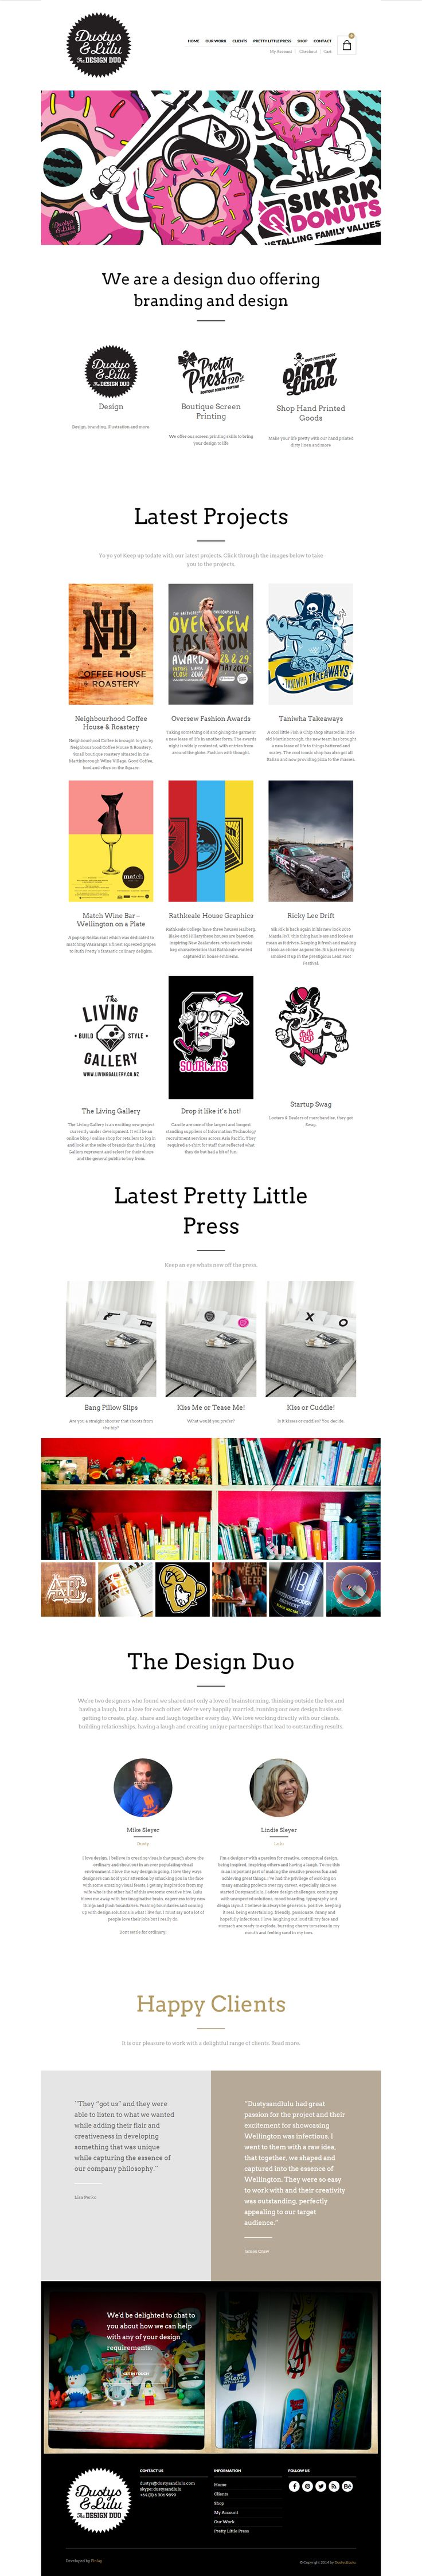 http://dustysandlulu.com/ was built with The Retailer Premium WordPress theme available here: https://themeforest.net/item/the-retailer-responsive-wordpress-theme/4287447?utm_source=pinterest.com&utm_medium=social&utm_content=dusty-lulu&utm_campaign=showcase #graphicdesign #web #webdesign #wordpresstheme